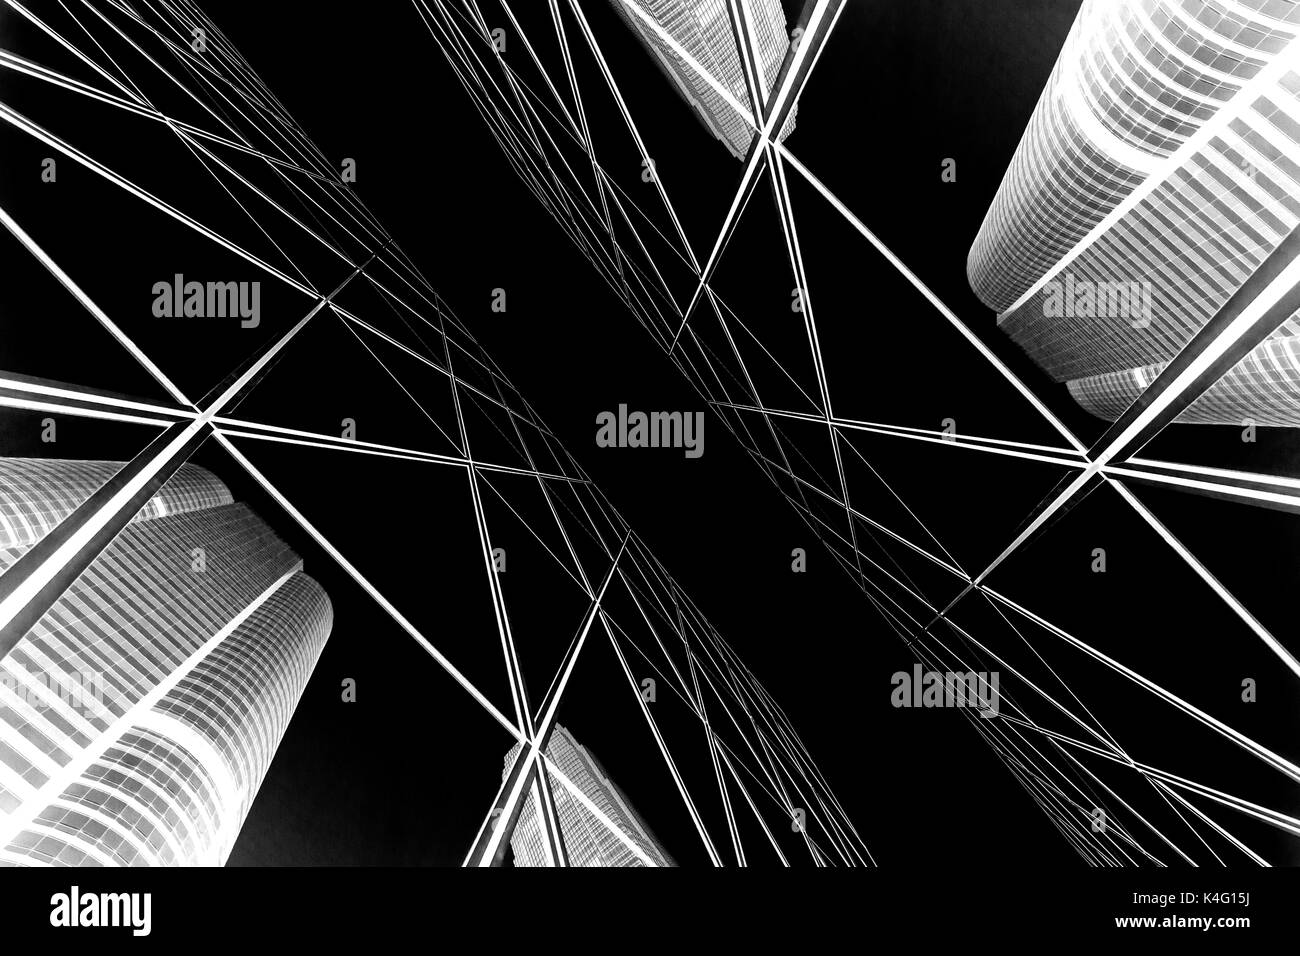 Abstract buildings background with B&W color - Stock Image